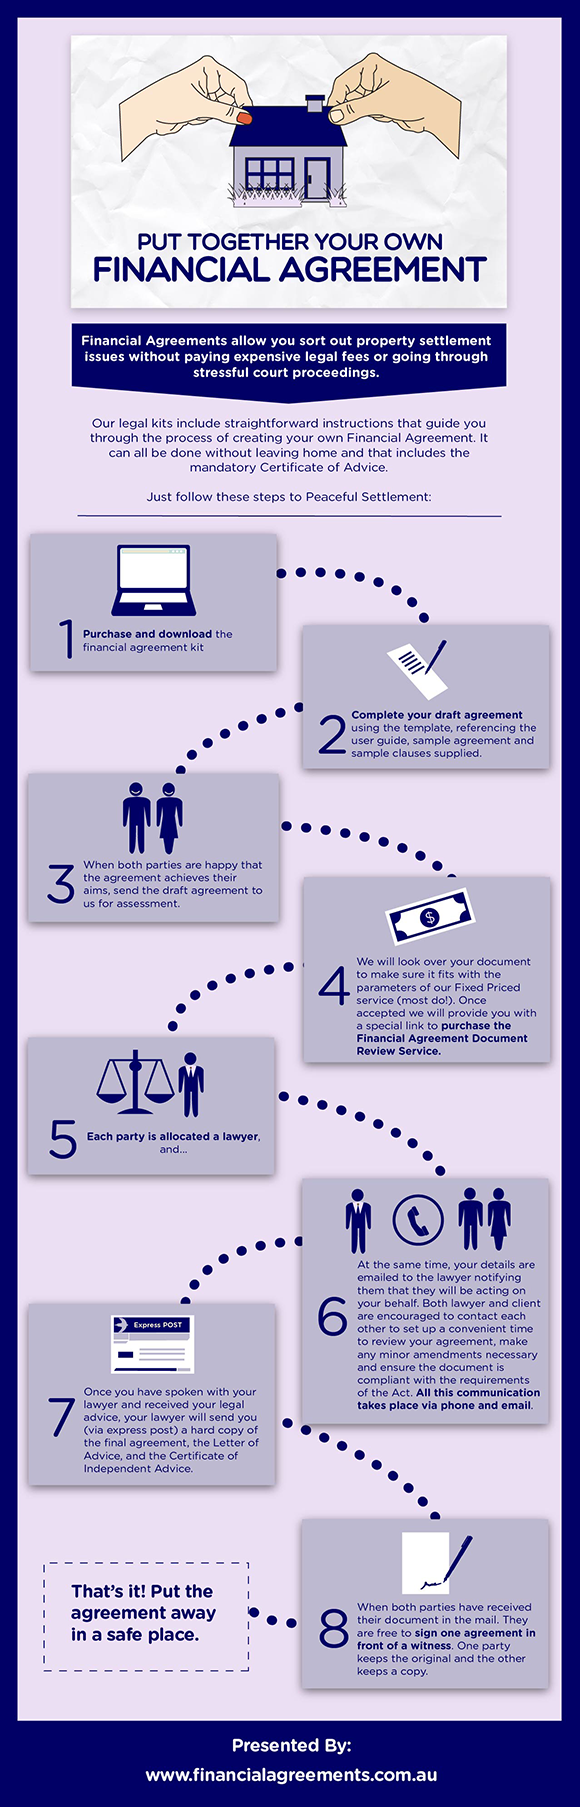 Financial Agreements - step by step